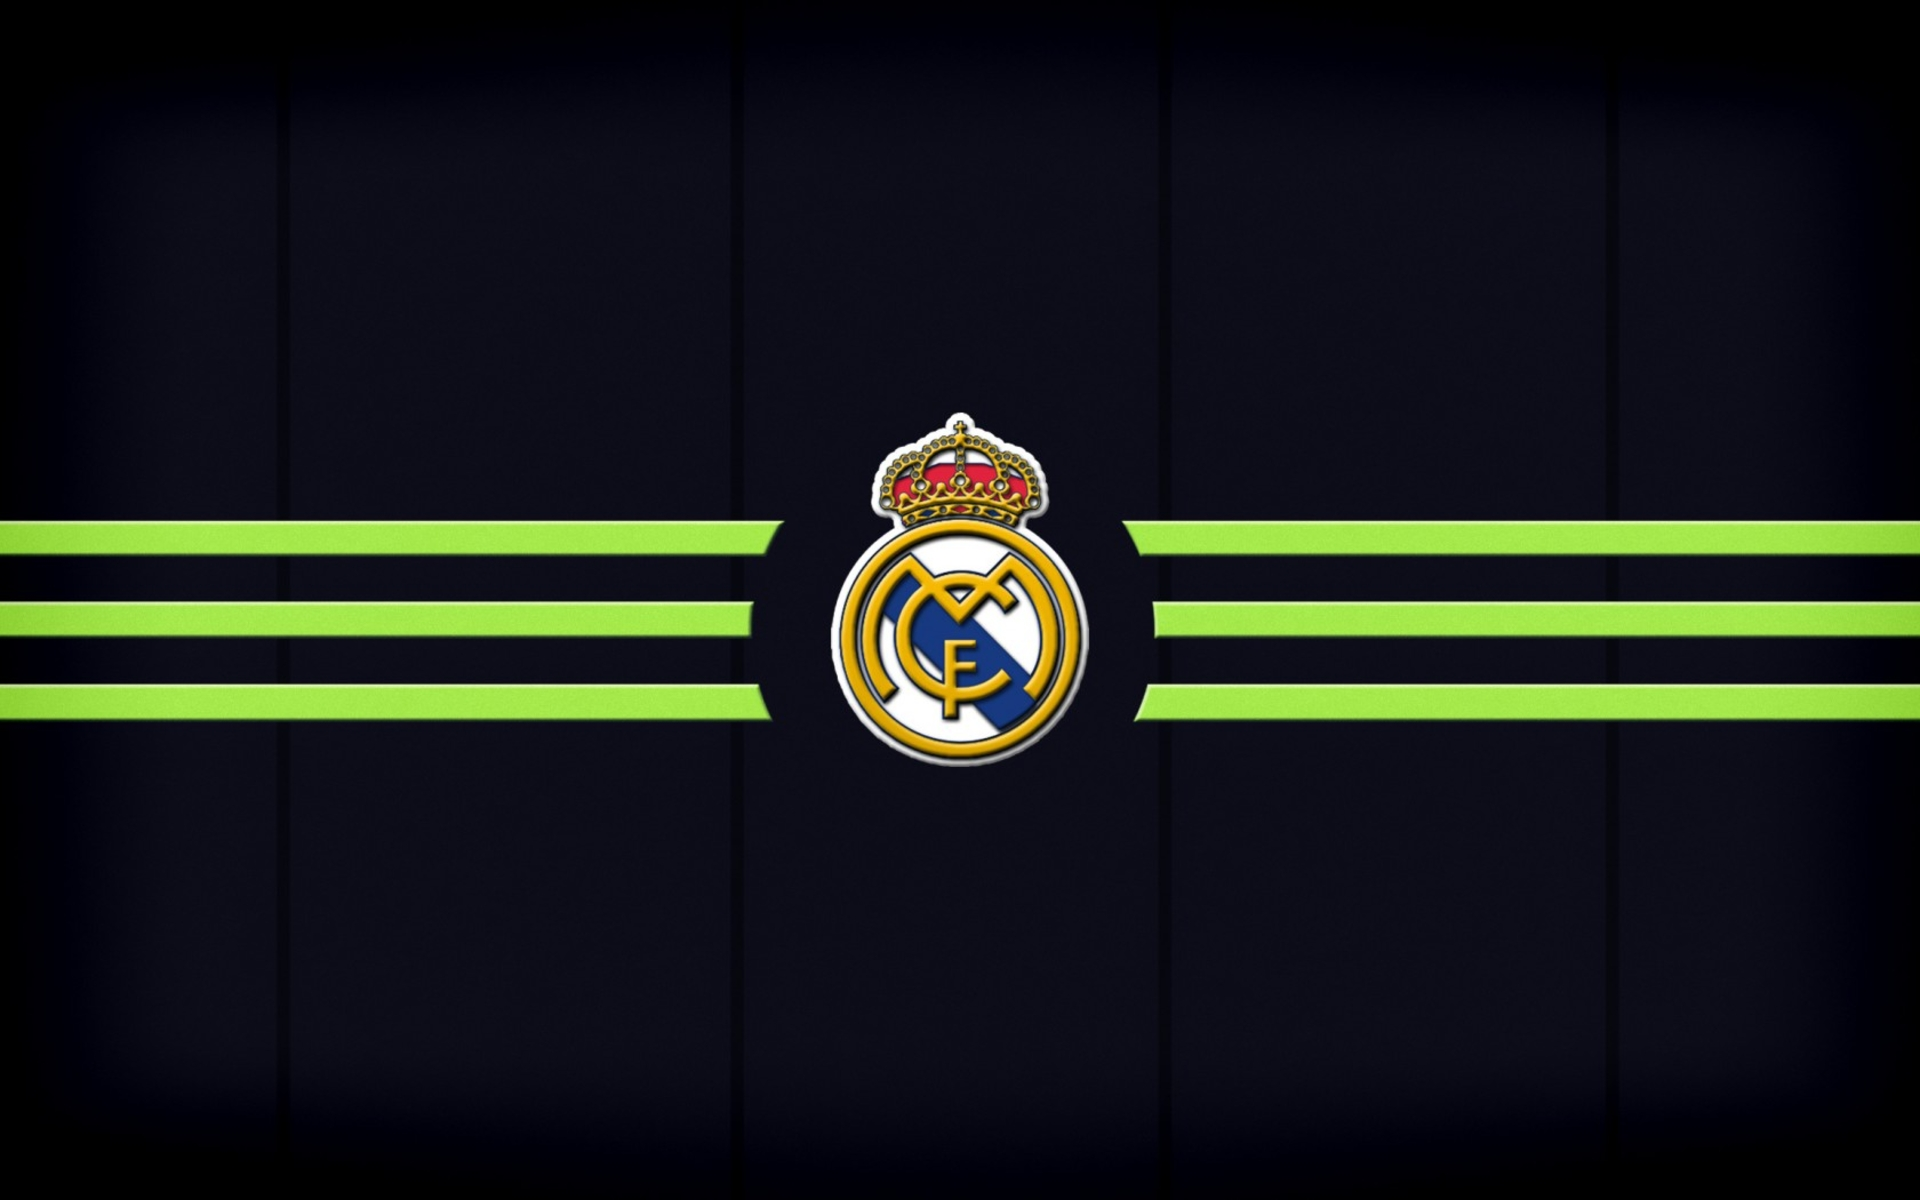 Real Madrid C.F. HD Wallpaper | Background Image | 1920x1200 | ID:770523 - Wallpaper Abyss